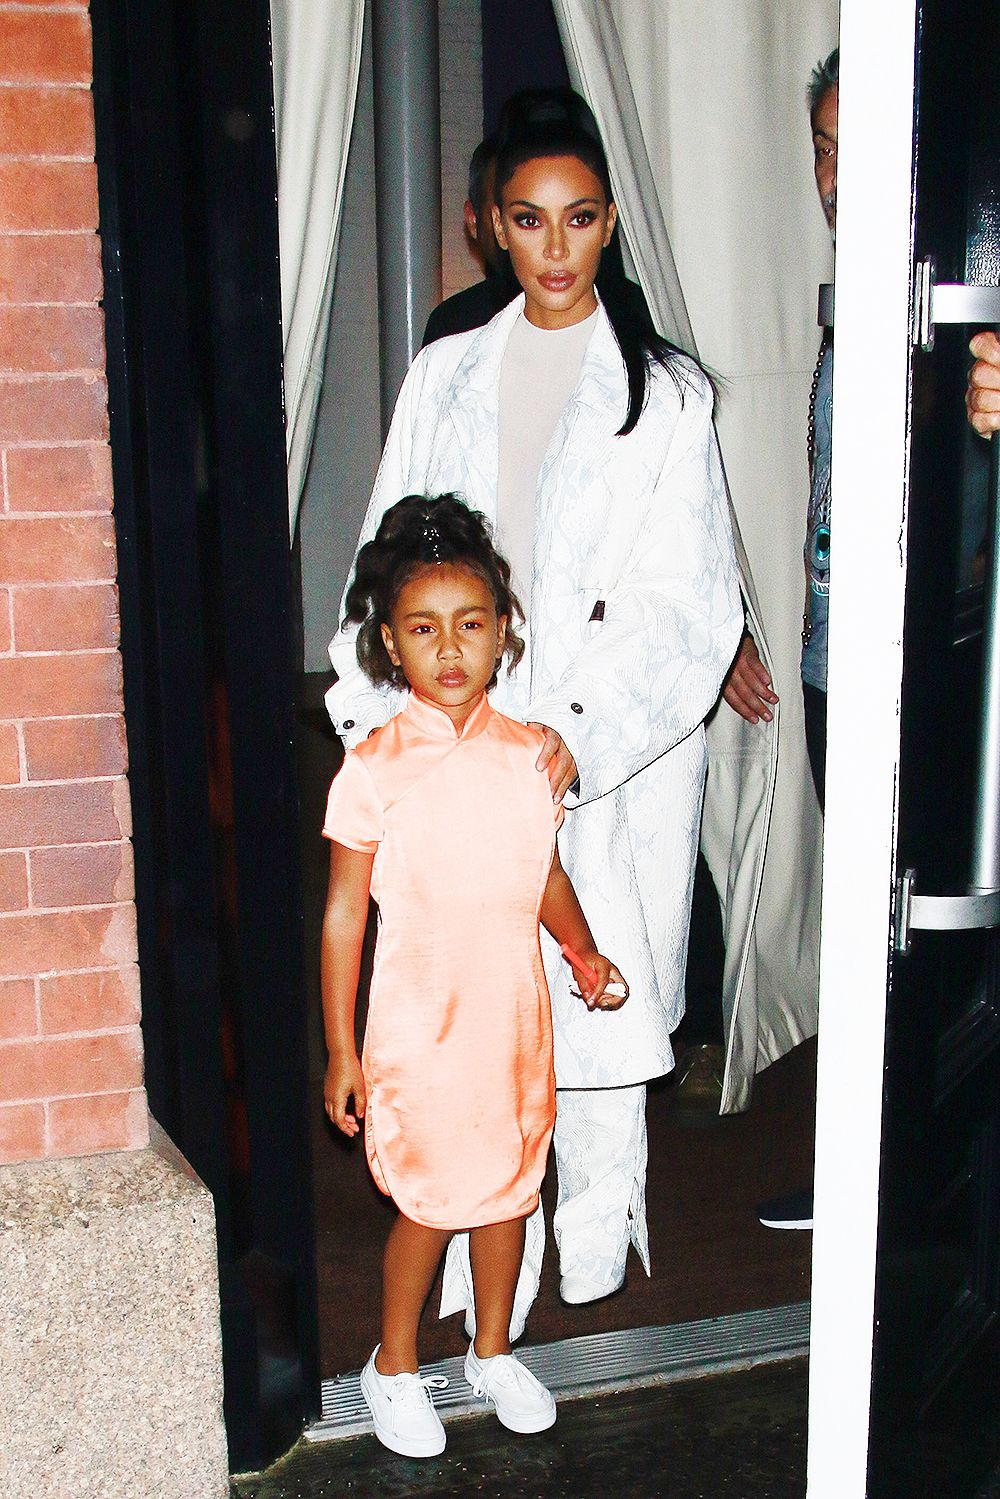 Celebrity Kids Wearing Makeup Pics Cute Outfits For Kids North West Outfits Kardashian Kids